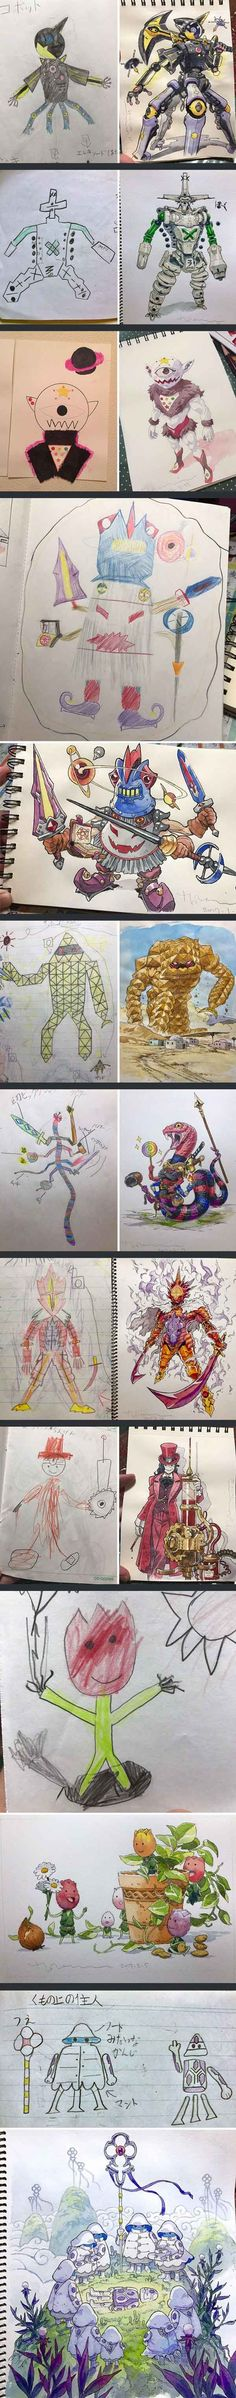 Dad turns his son's doodles into awesome anime art